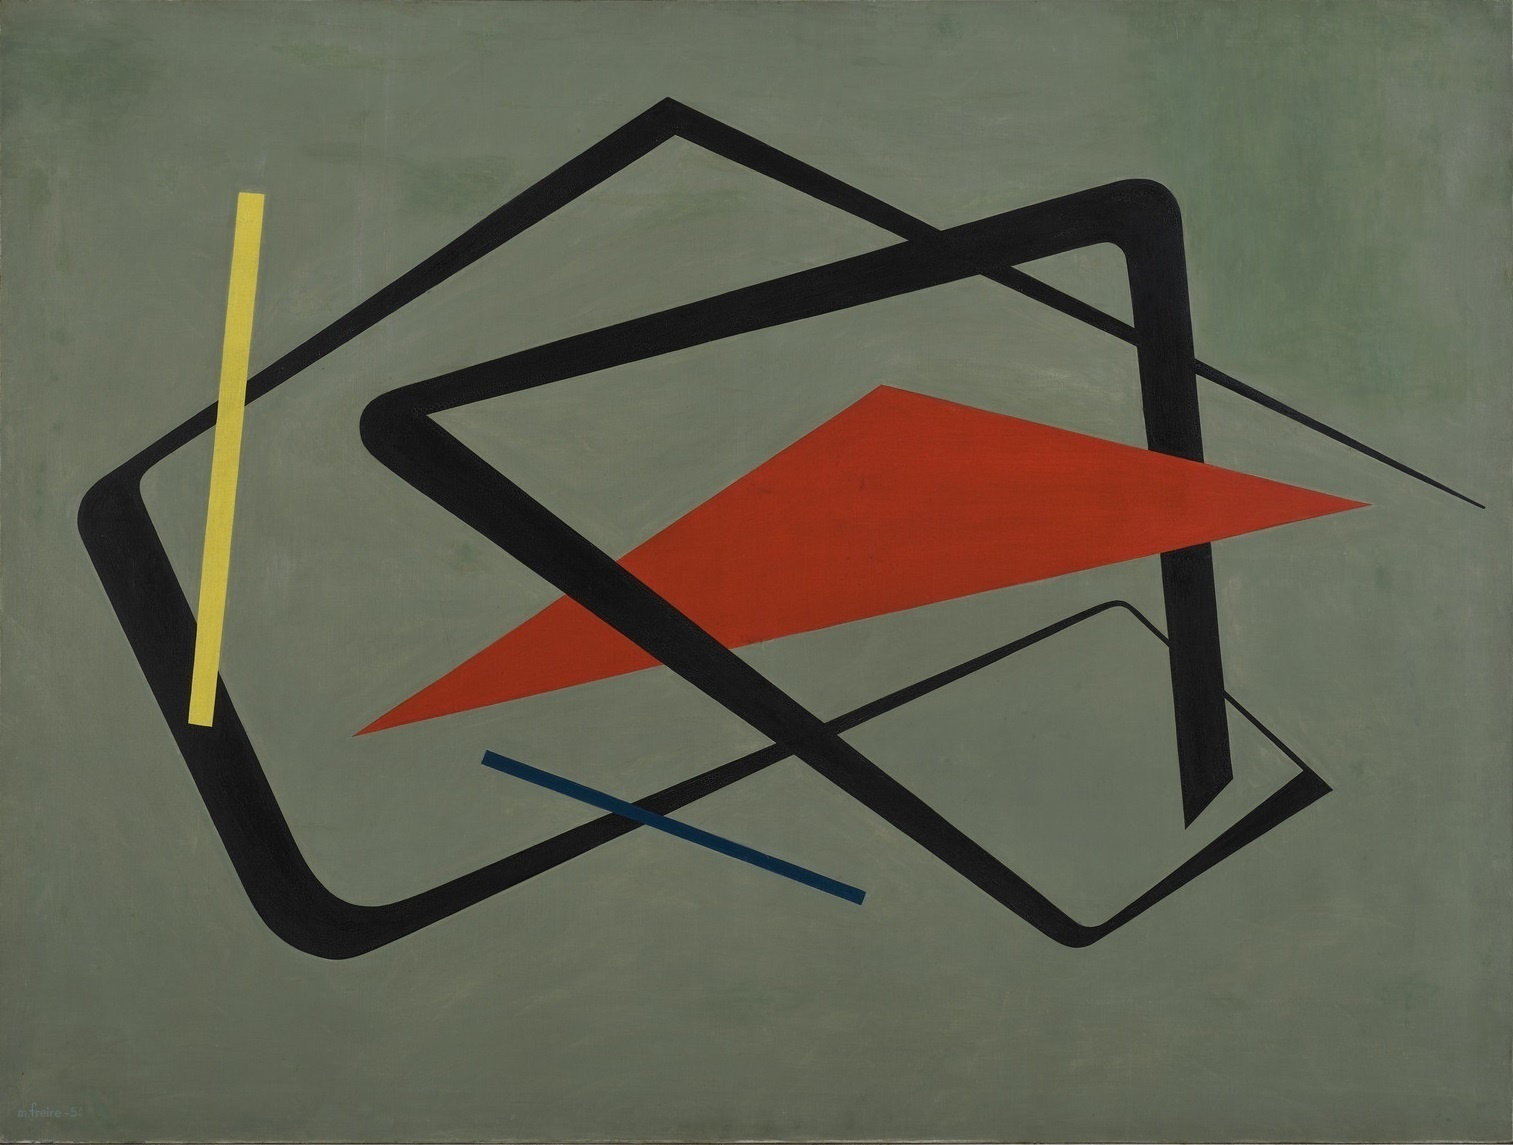 María Freire (Uruguayan, 1917–2015). Untitled. 1954. Oil on canvas, 36 1/4 × 48 1/16″ (92 × 122 cm). The Museum of Modern Art, New York. Promised gift of Patricia Phelps de Cisneros through the Latin American and Caribbean Fund in honor of Gabriel Pérez-Barreiro, 2016